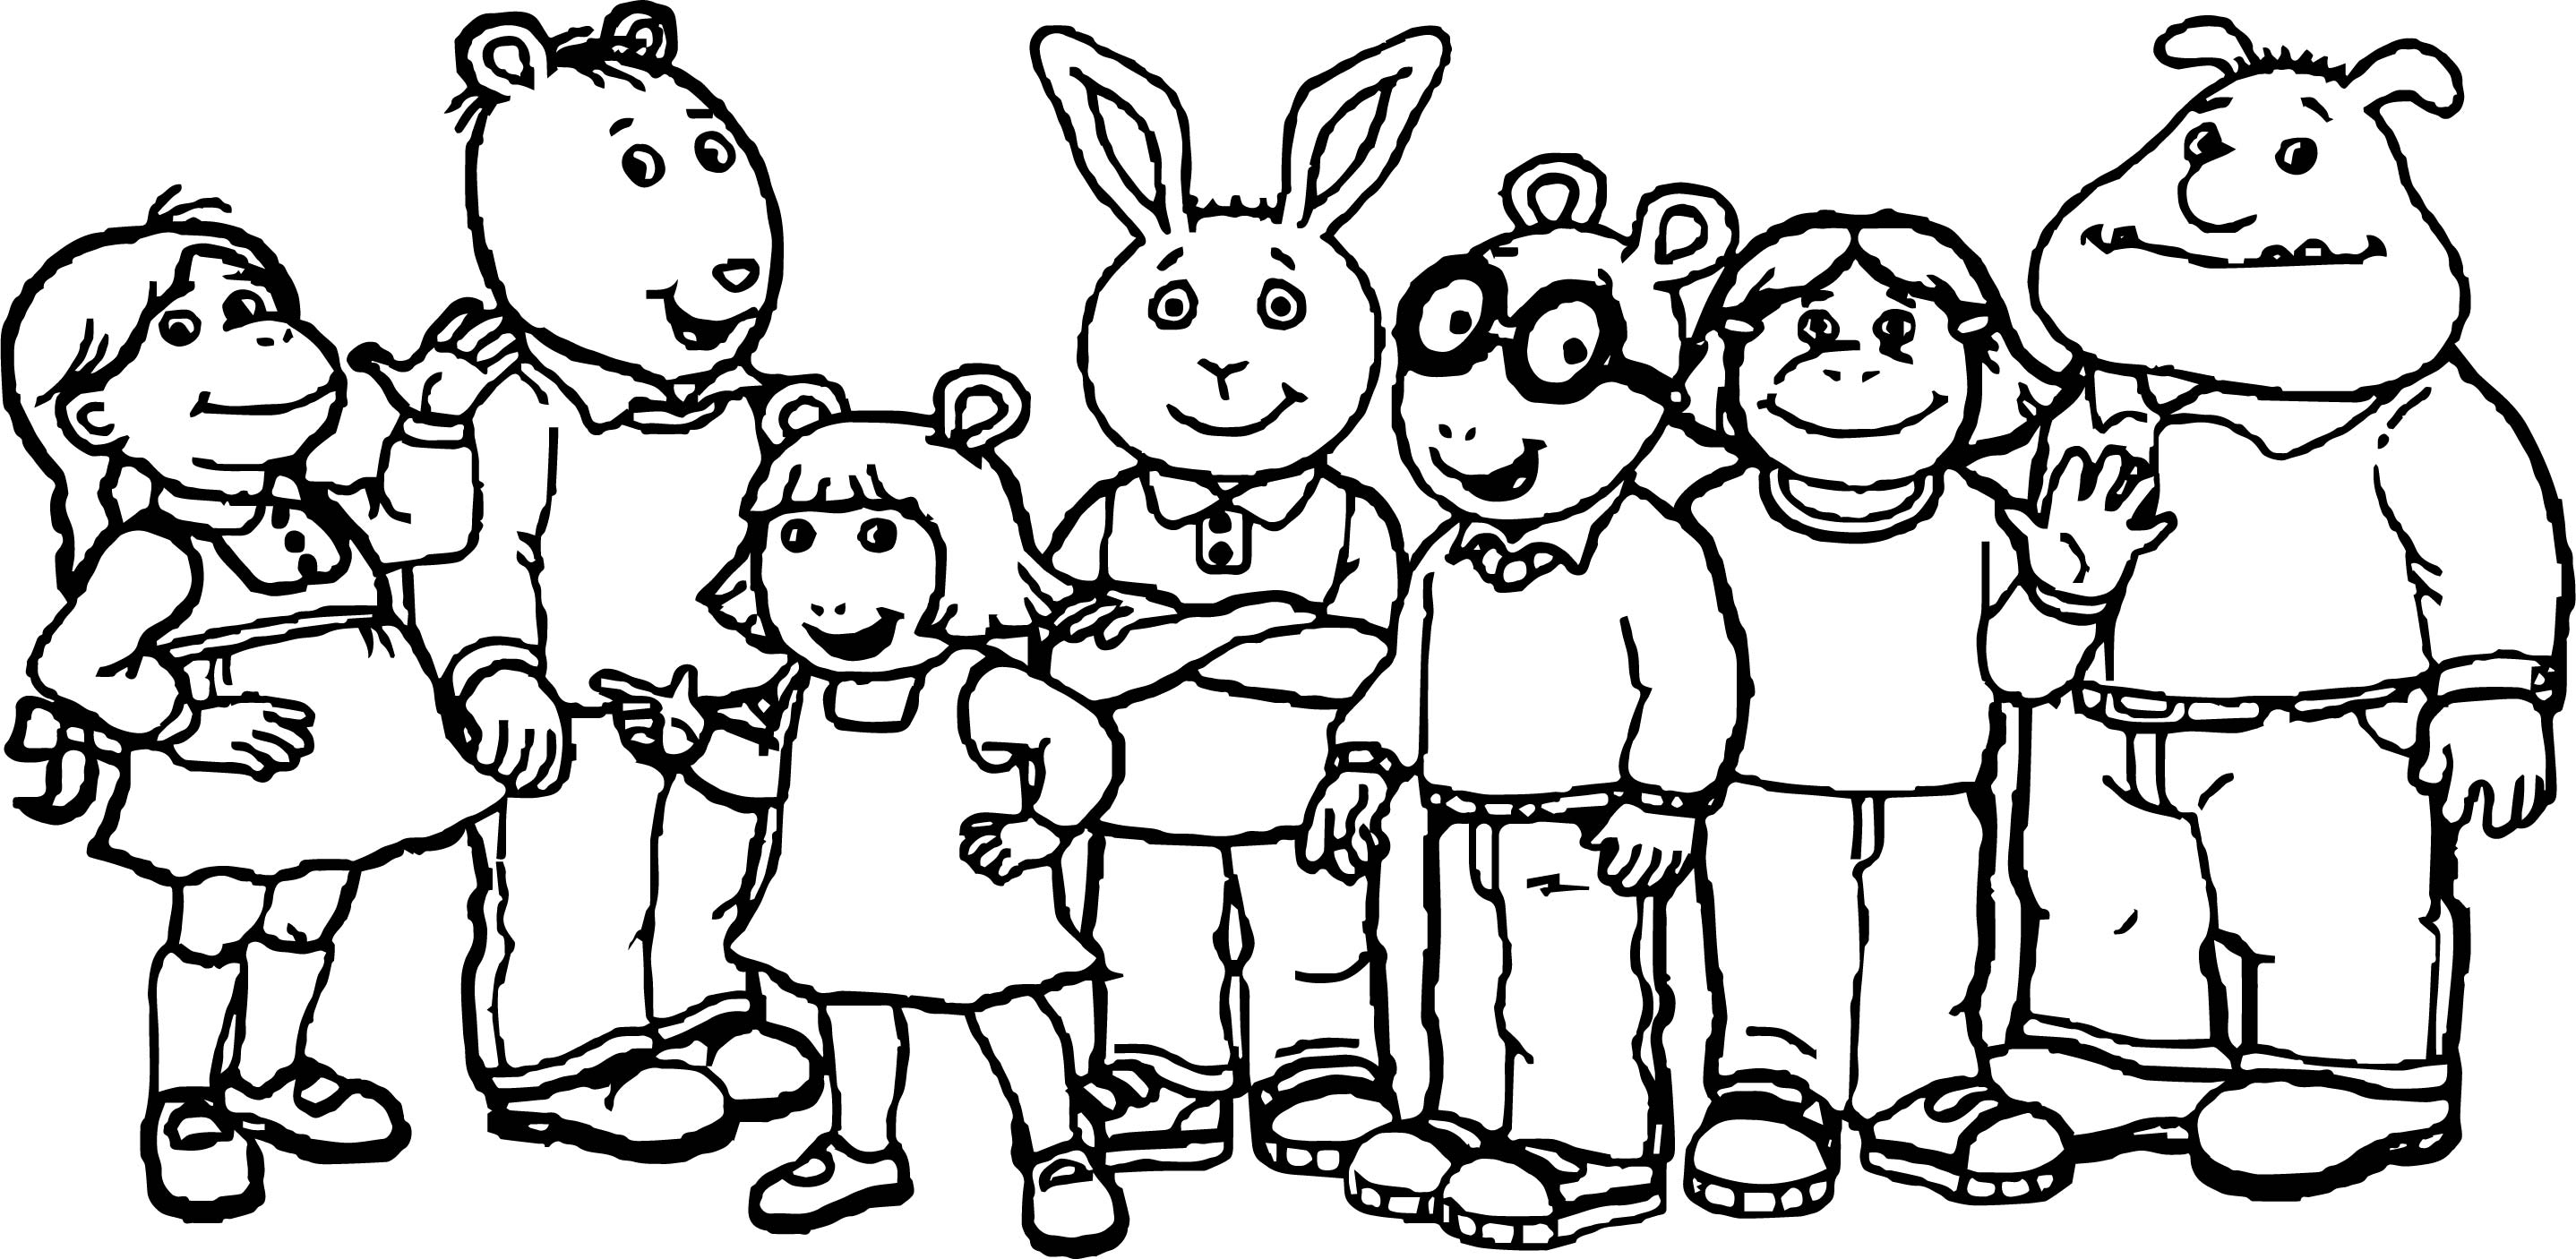 pororo coloring pages interesting pororo coloring pages with